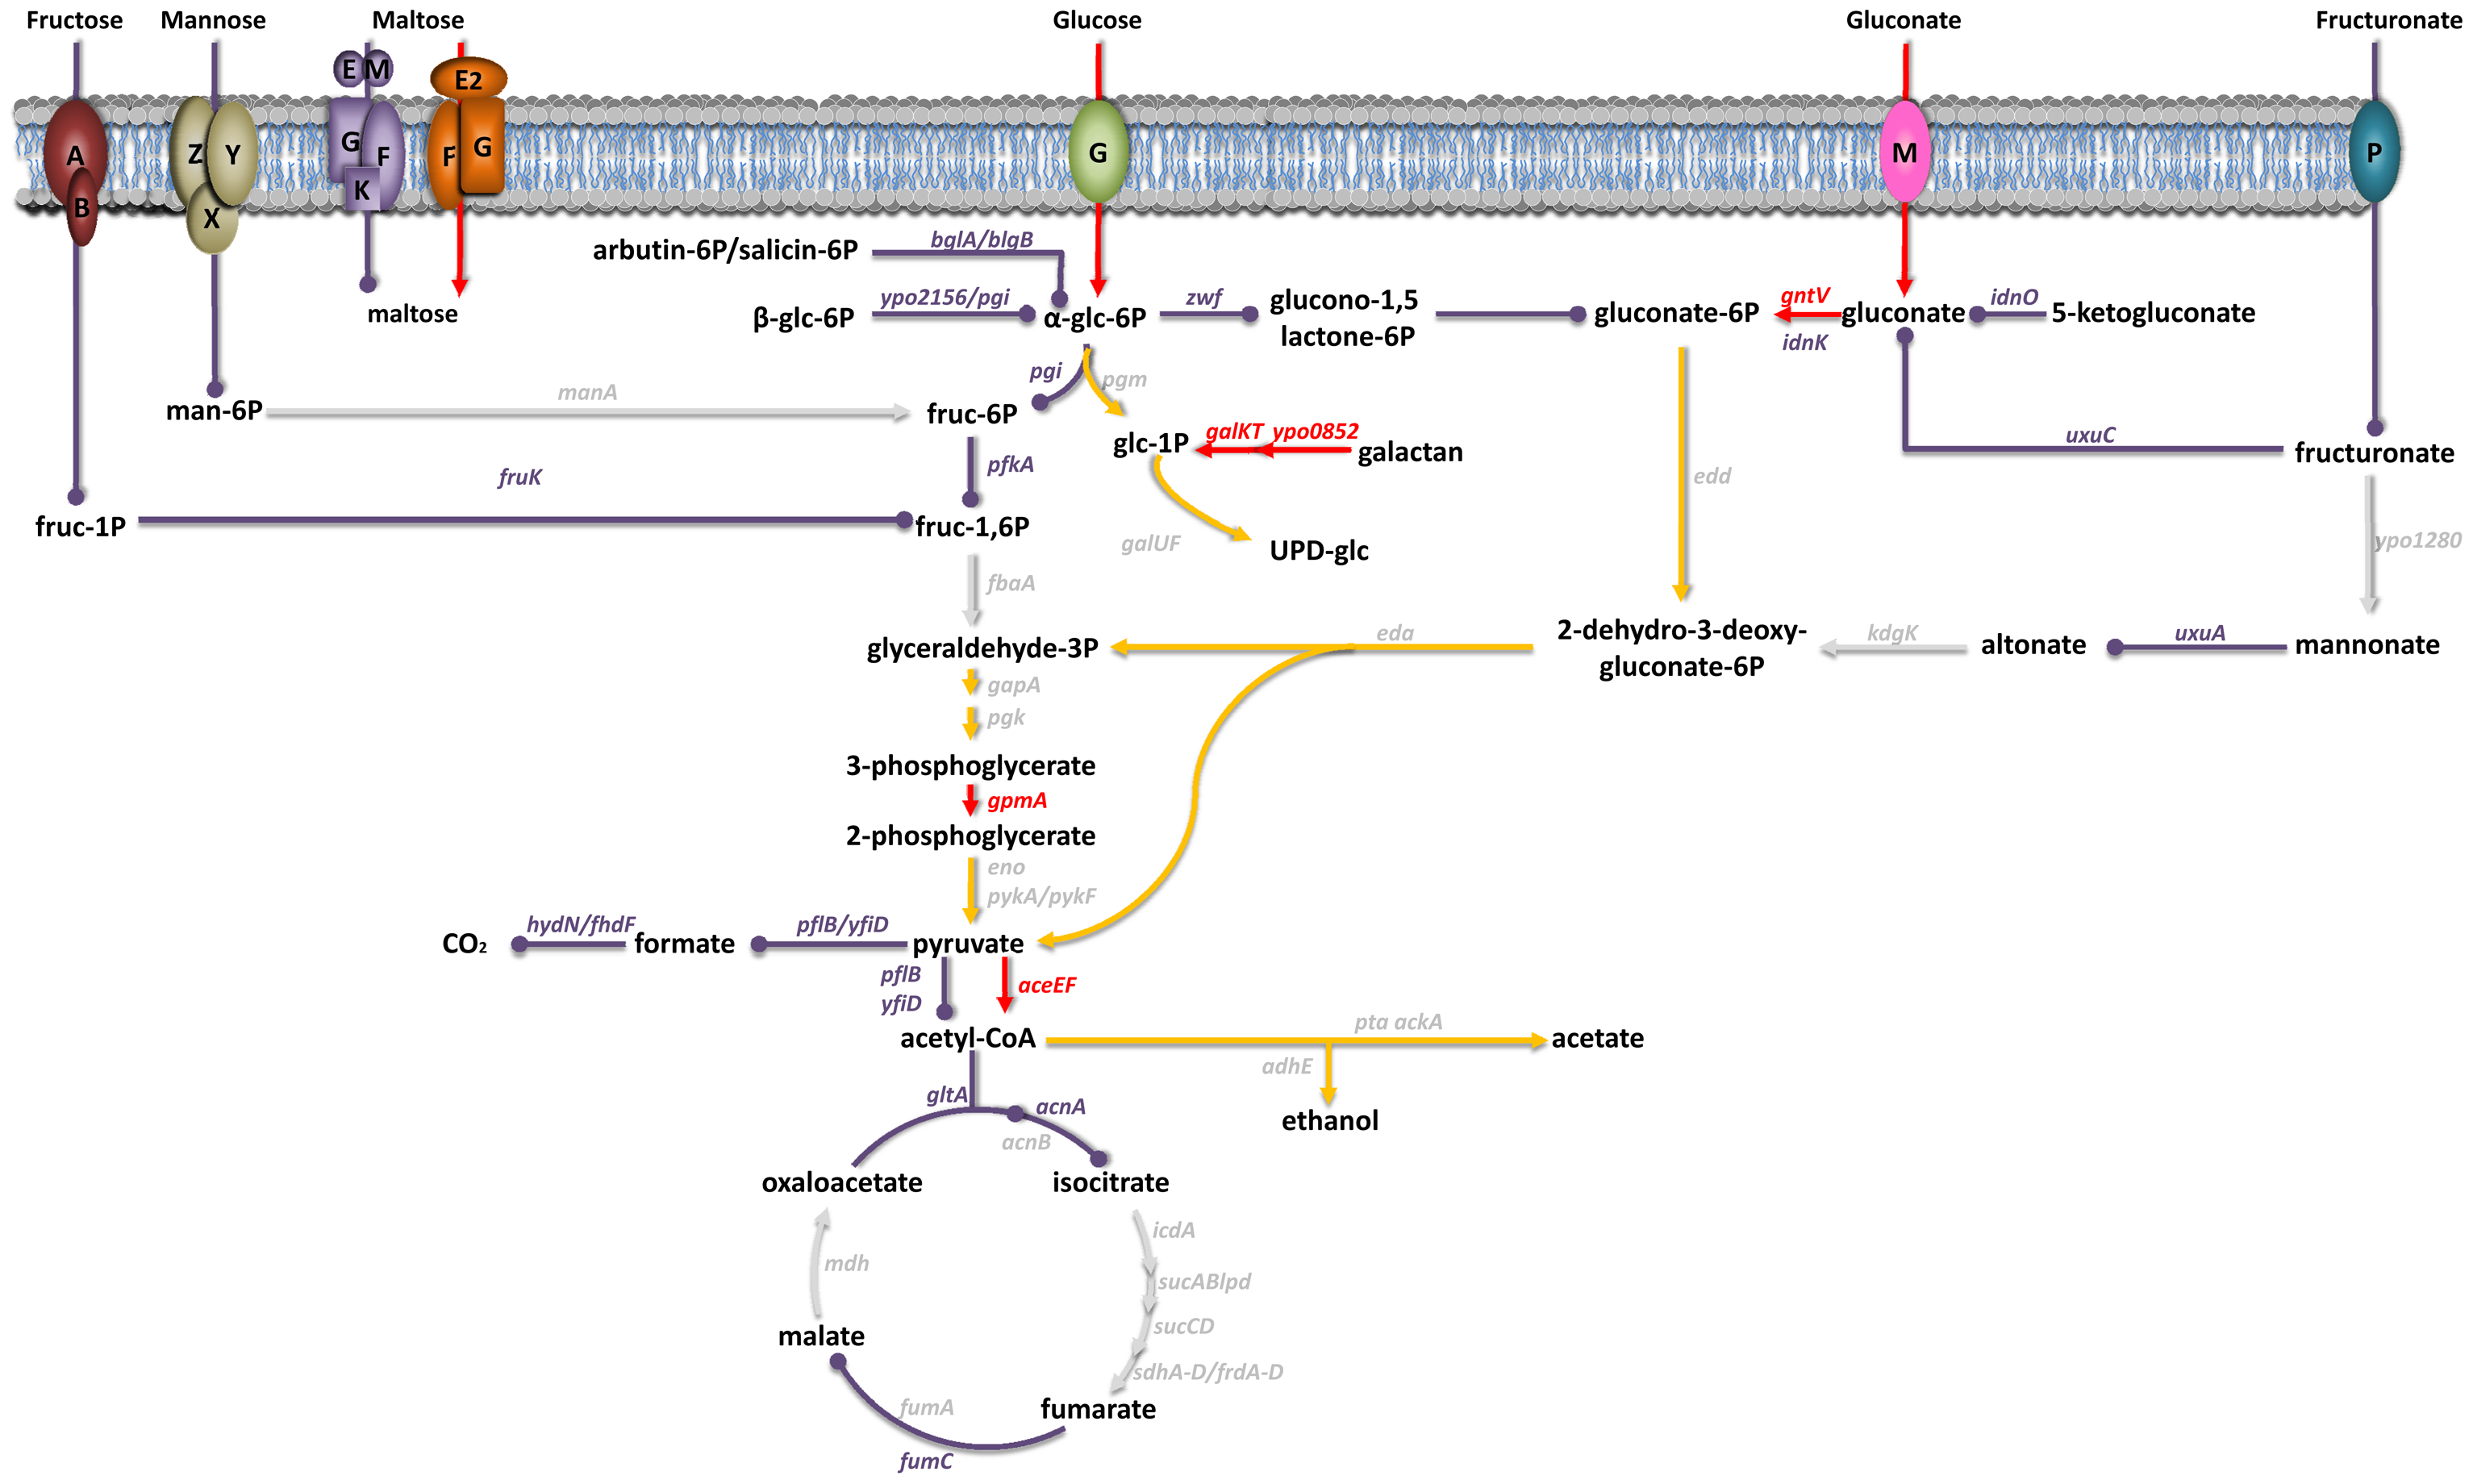 Carbohydrate uptake and metabolism by <i>Y. pestis</i> in its mammalian host.